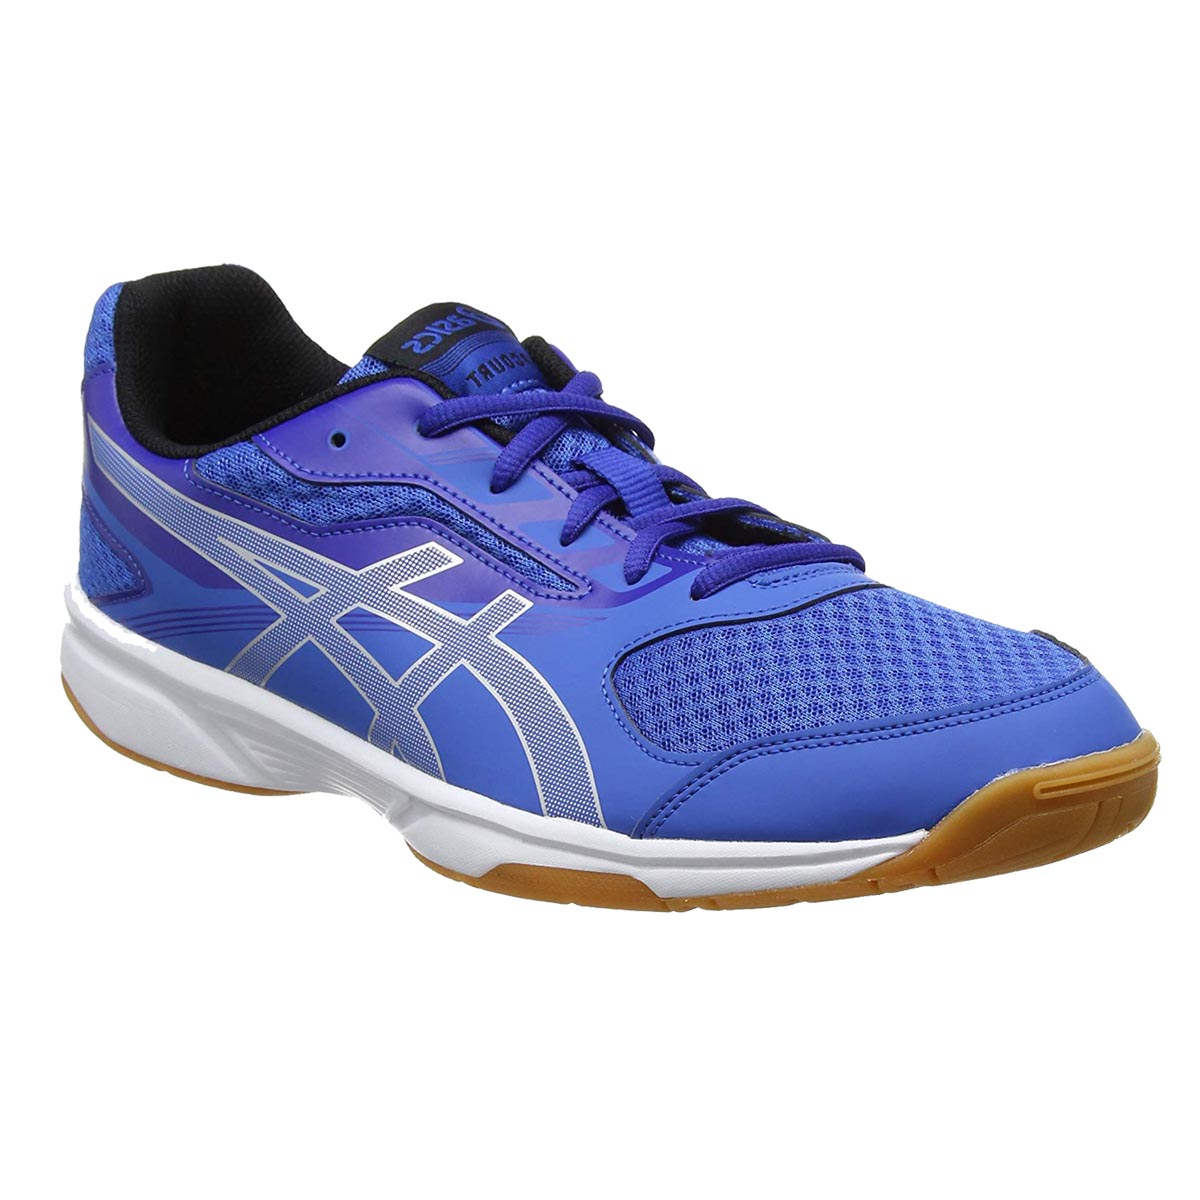 Buy Asics Gel Upcourt 2 Squash Shoes (Blue Silver) Online in India 28f3beb94c8af